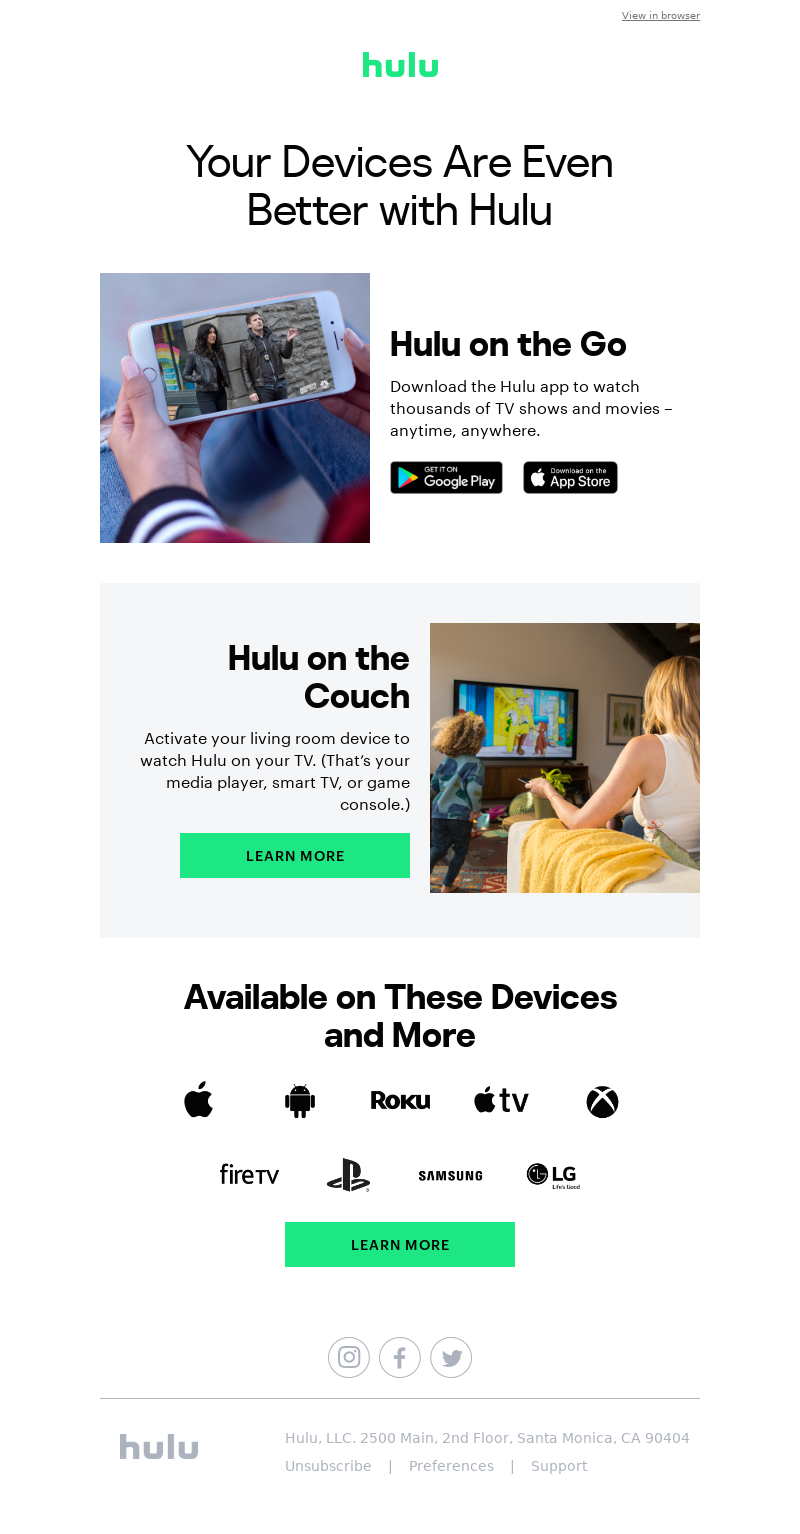 Hulu Your Devices Are Even Better with Hulu Hulu on the Go Hulu on the Go H